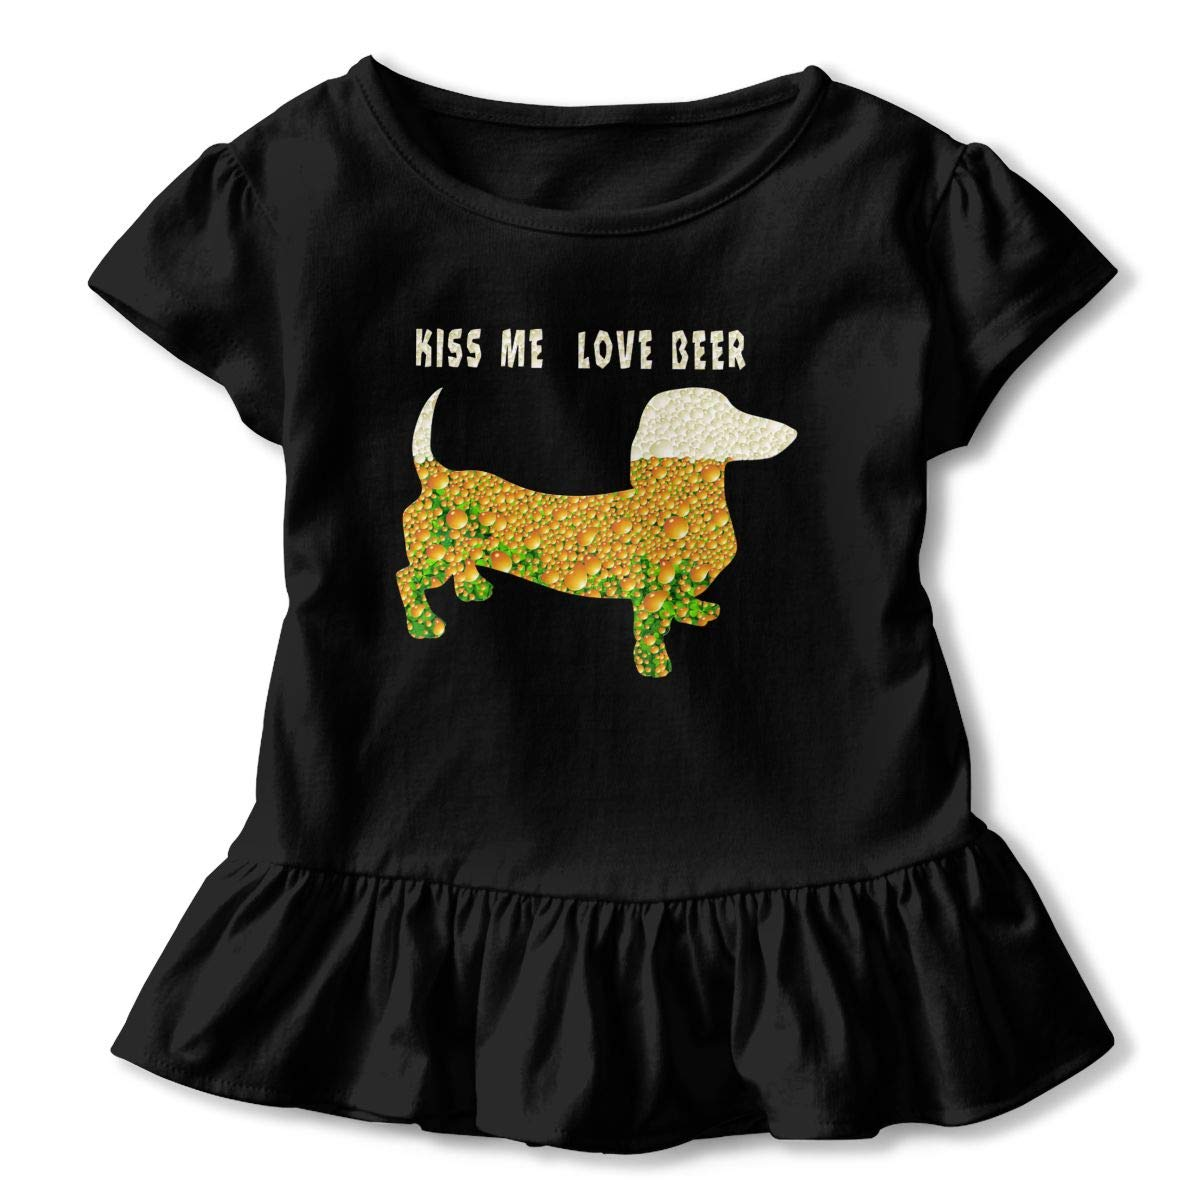 CZnuen Kiss Me Love Beer Dashhund Baby Girls Basic Short Puff Sleeve Round Neck Ruffle T-Shirt